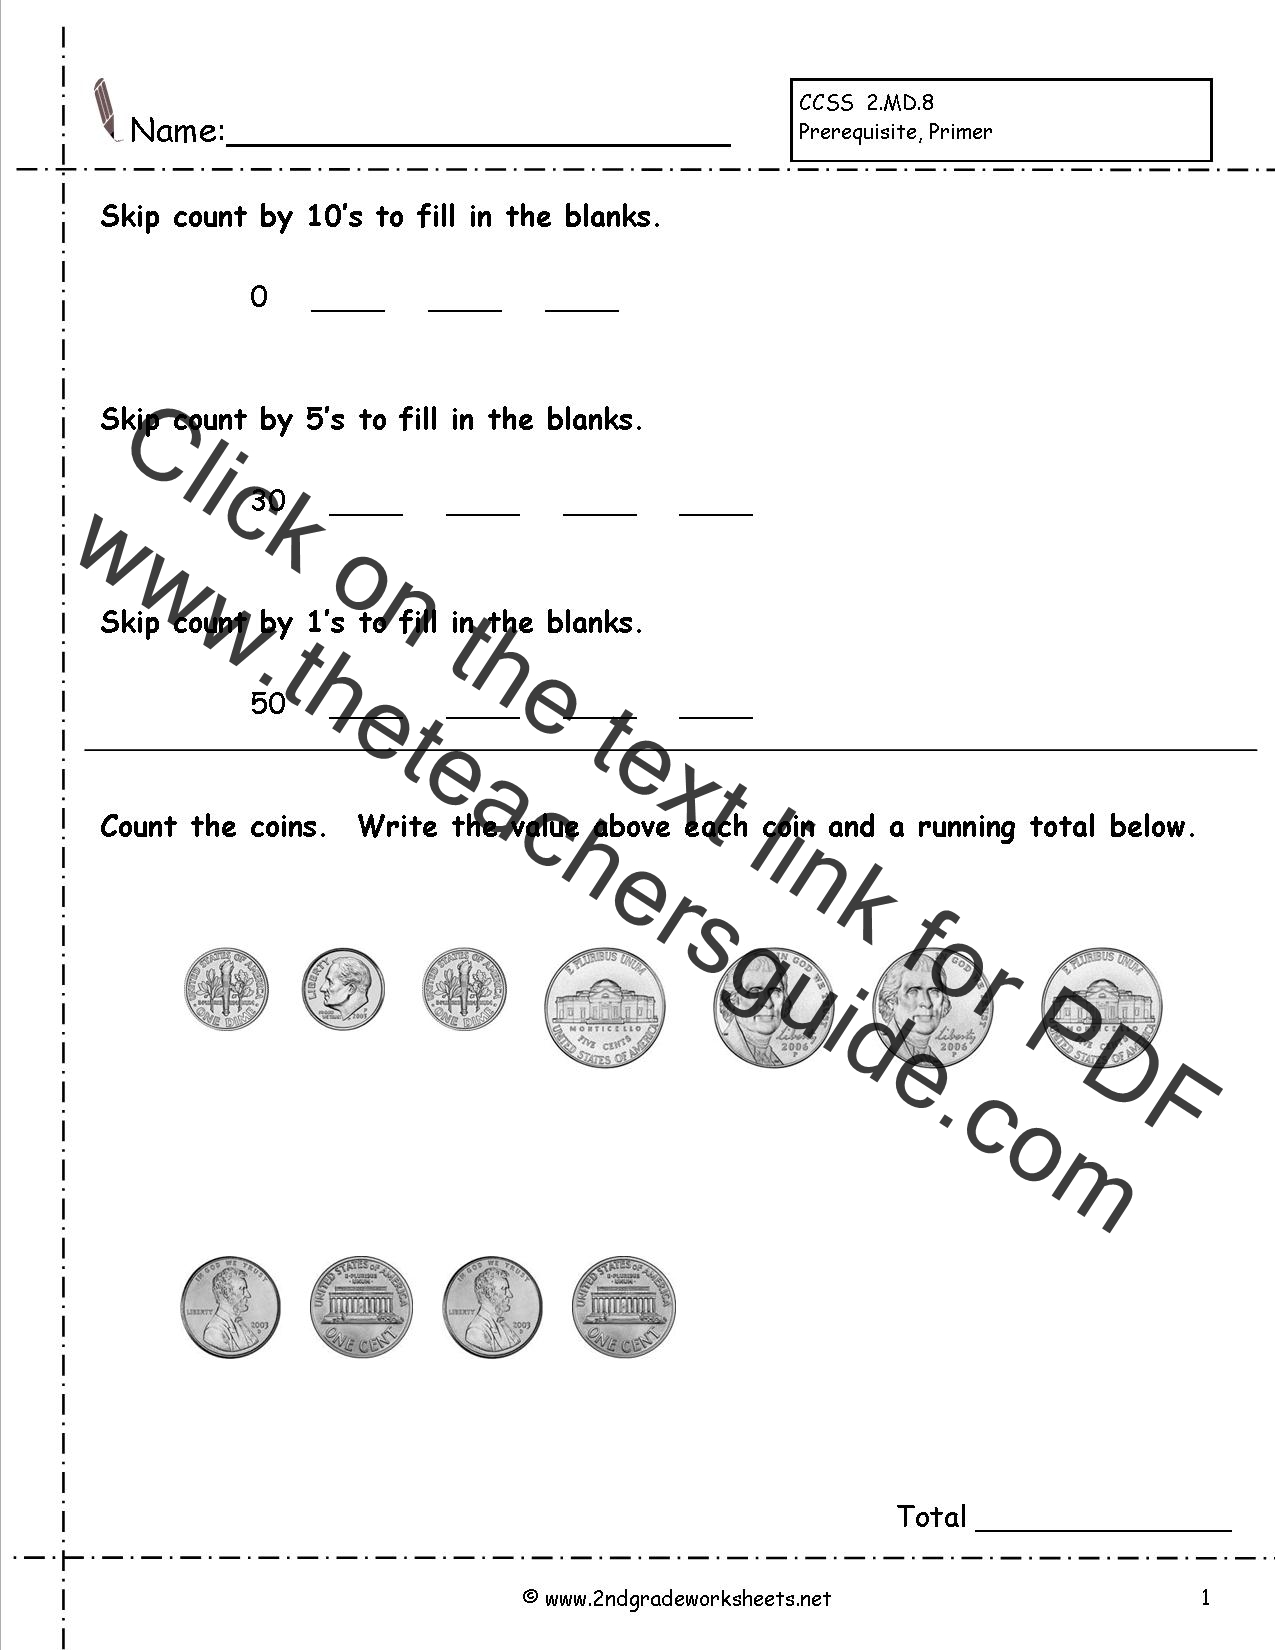 Counting Coins and Money Worksheets and Printouts – Money Practice Worksheets